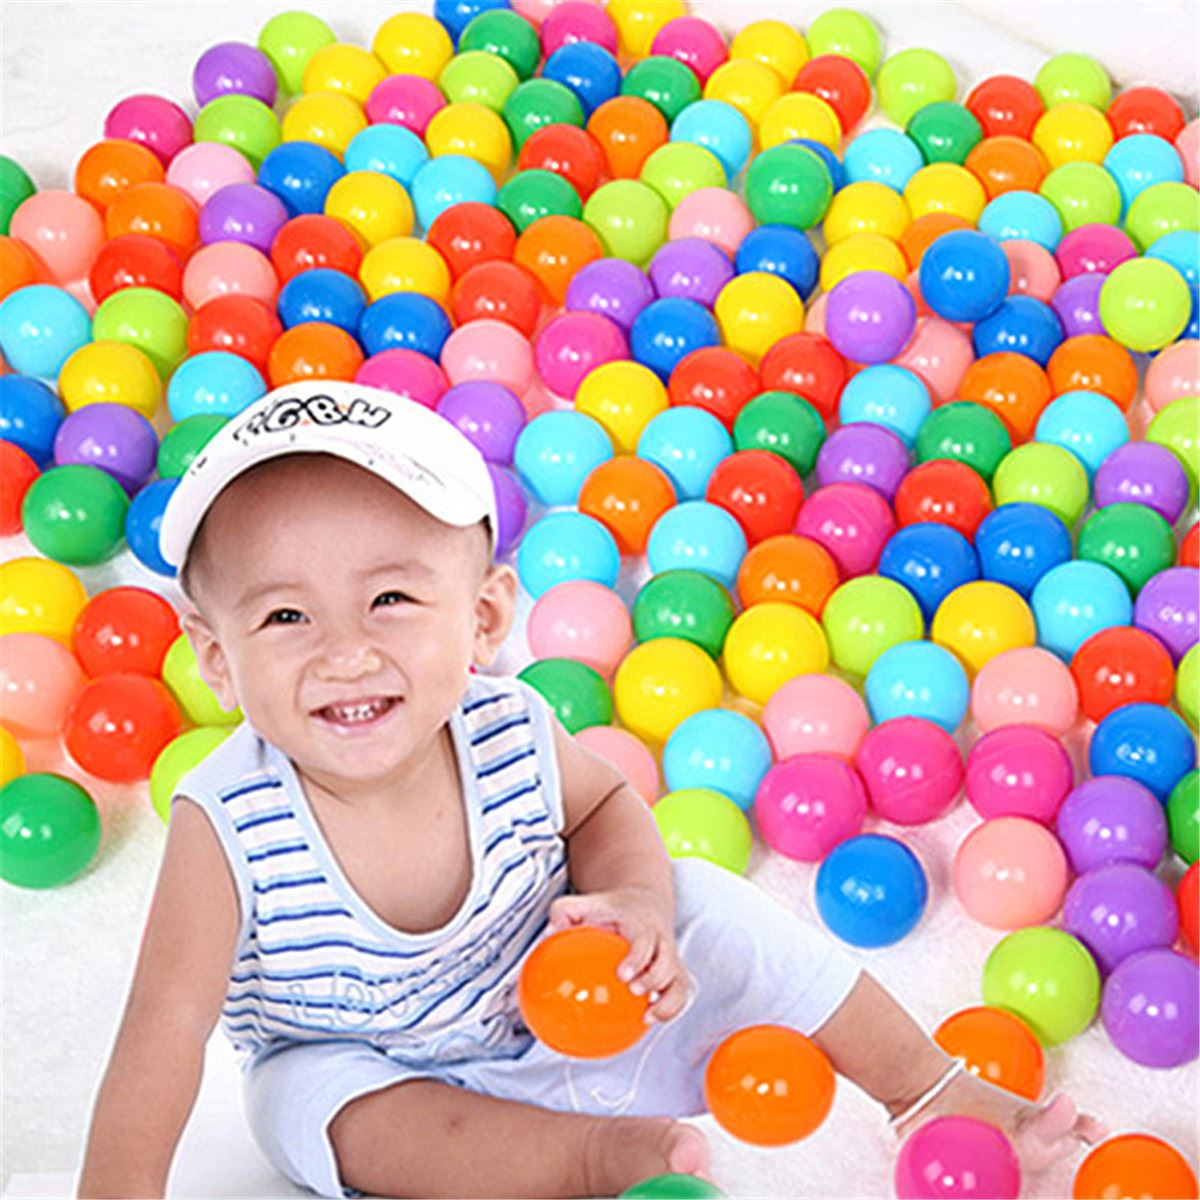 200pcs 40mm Secure Colorful Ball Soft Plastic Ocean Ball Funny Baby Kid Swim Pit Toy Water Pool Ocean Wave Ball(China (Mainland))